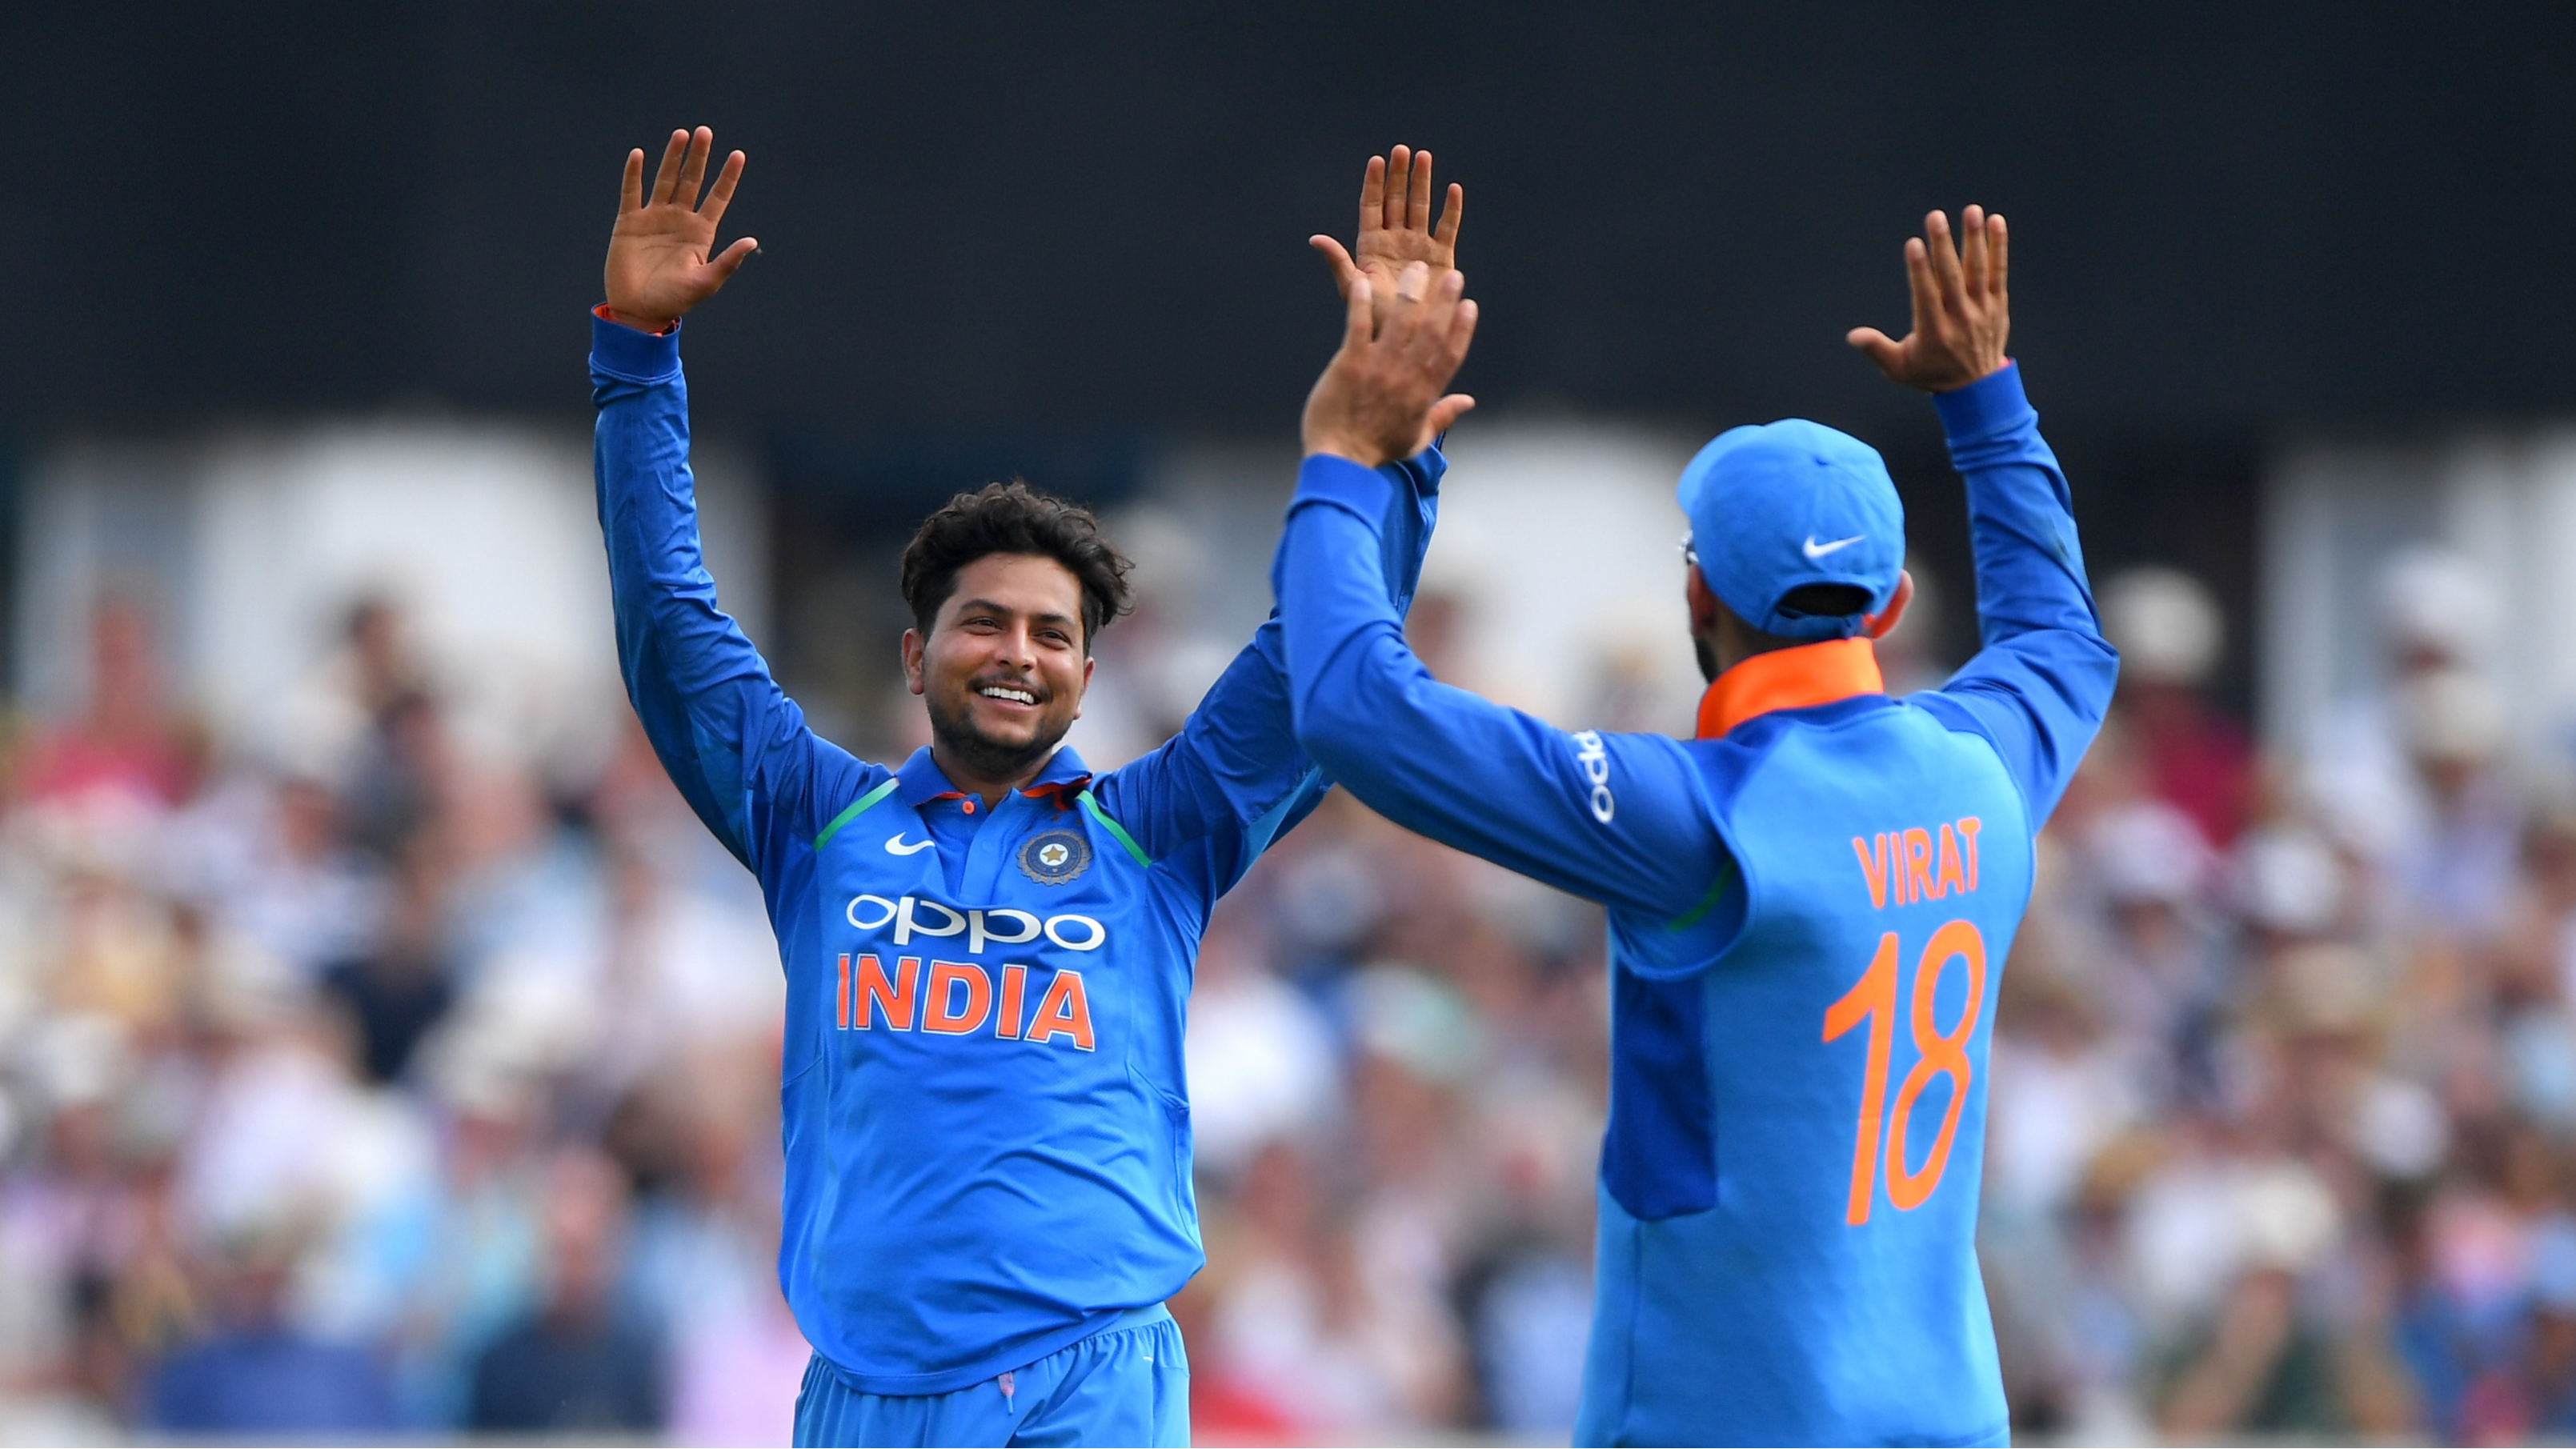 ENG v IND 2018: Twitter reacts as Kuldeep Yadav's astonishing 6-fer restricts England to 268